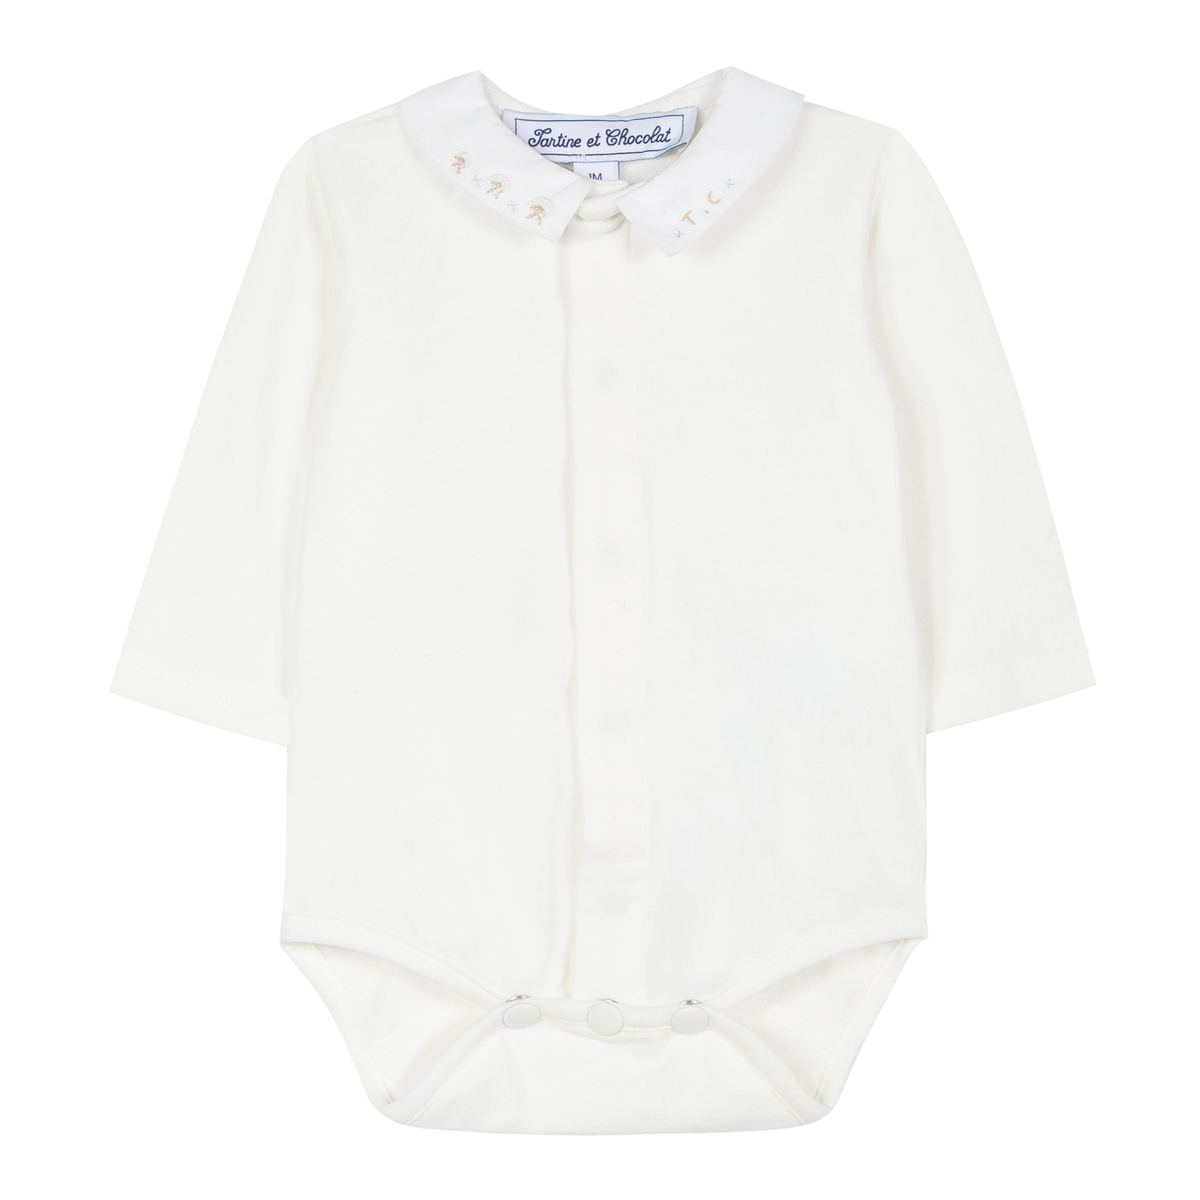 Tartine et Chocolat Long Sleeve Bodysuit with Embroidered Collar